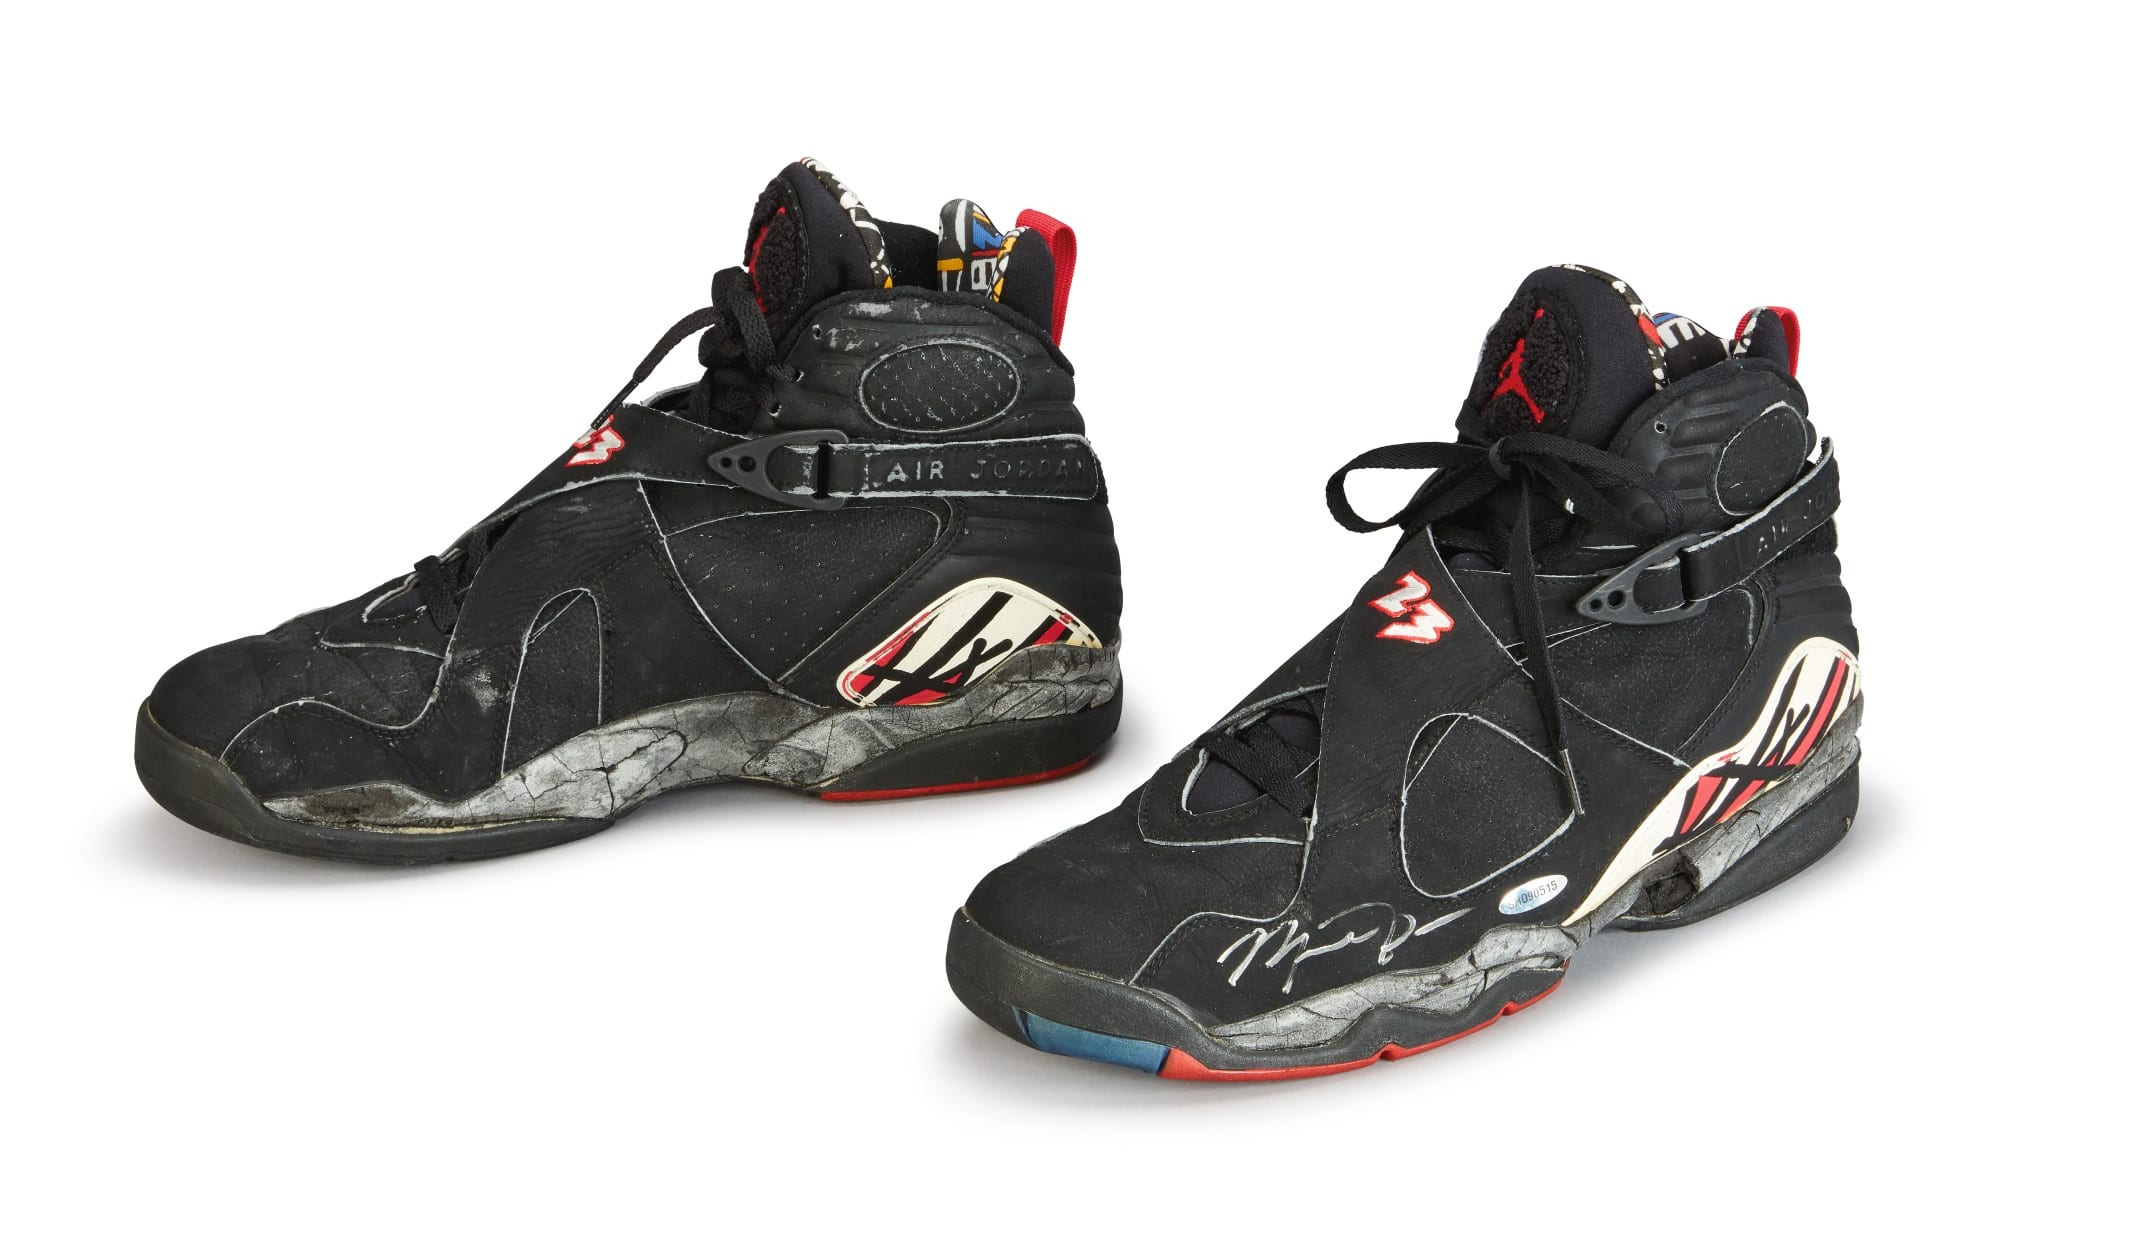 Michael Jordan Playoff Game Worn and Signed Air Jordan VIII Black and Red, Foto: Sotheby's